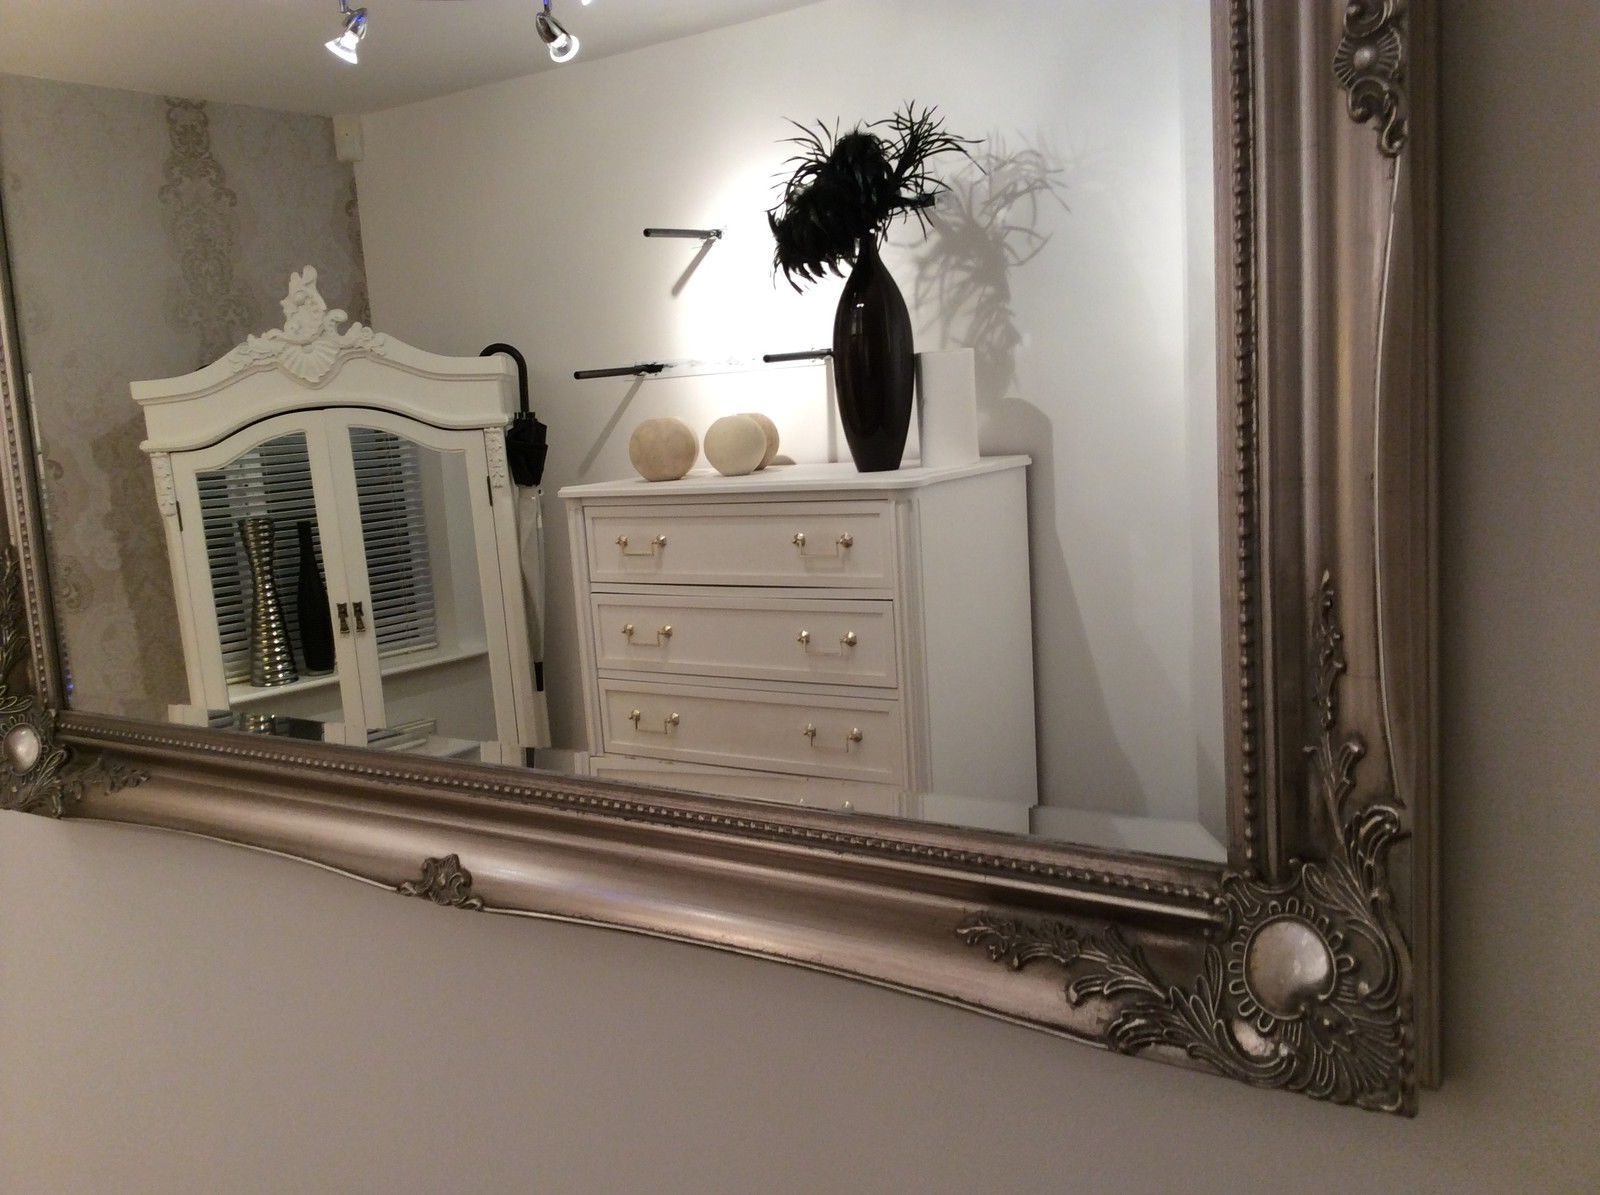 X Large Wall Mirrors Intended For Famous Large Silver Shabby Chic Wall Mirror – 42Inch X 30Inch – 107Cm X 76Cm *free  P&p* (View 19 of 20)